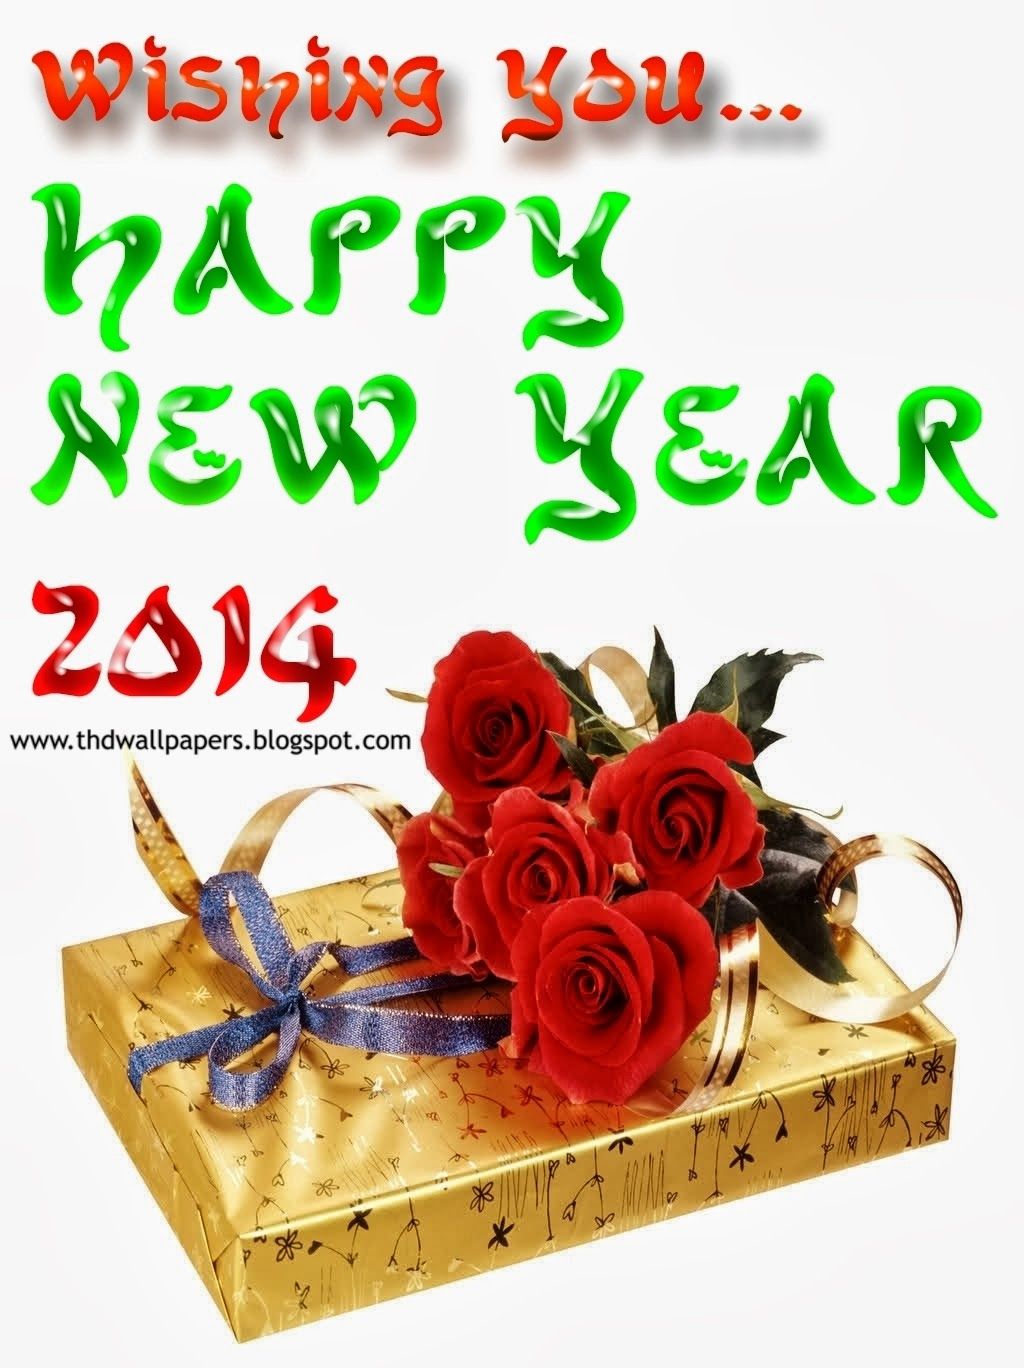 Happy New Year 2014.9 Iranian New Year Greetings 2014